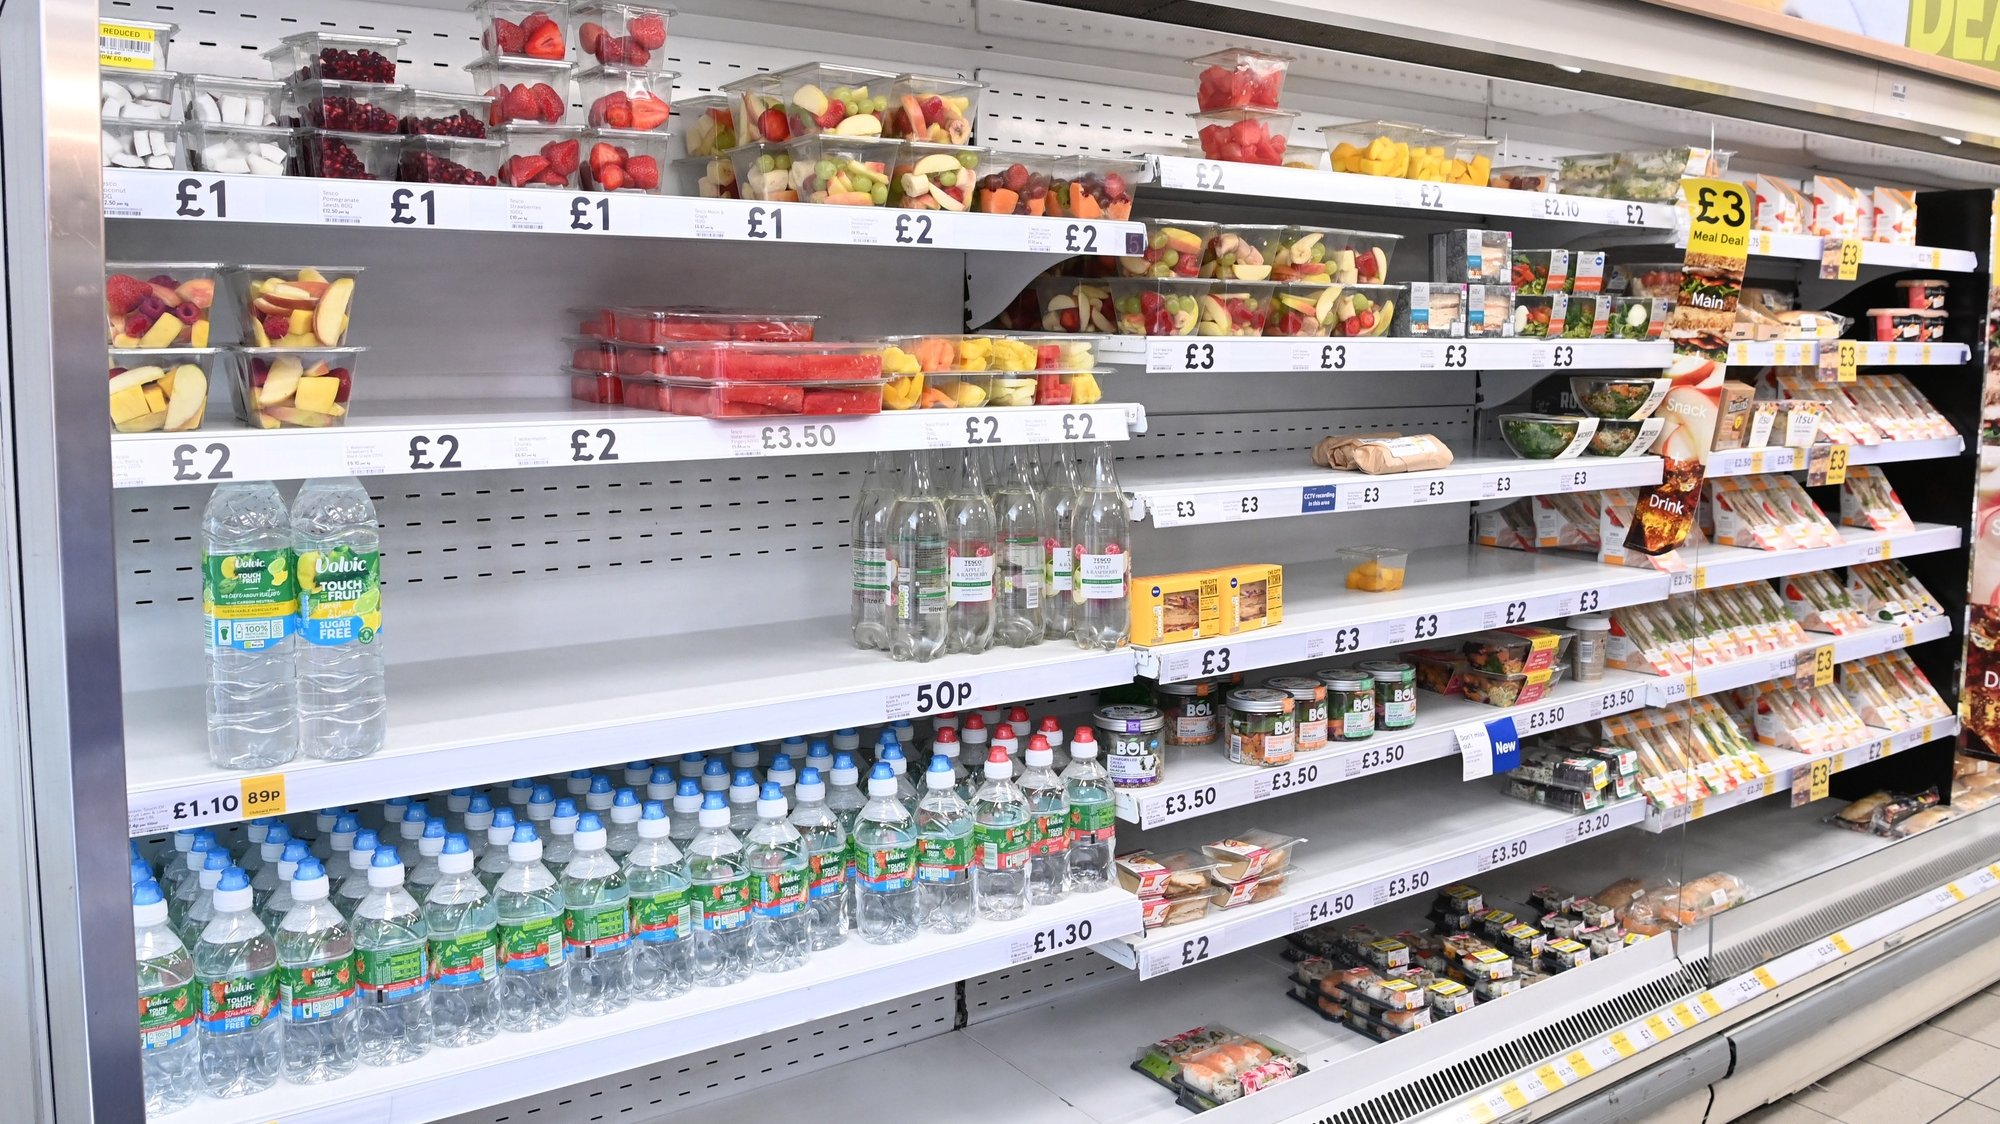 epa09358553 Food yet to be shelved at a supermarket in London, Britain, 22 July 2021. British supermarkets are struggling to stock shelves as staff shortages take their toll due to the so called 'pingdemic'. With so many staff going into self isolation after being pinged by the NHS app, supermarkets are now under increasing pressure to keep shelves fully stocked. The British government is being urged to allow supermarket staff to be exempt from self-isolation rules.  EPA/FACUNDO ARRIZABALAGA